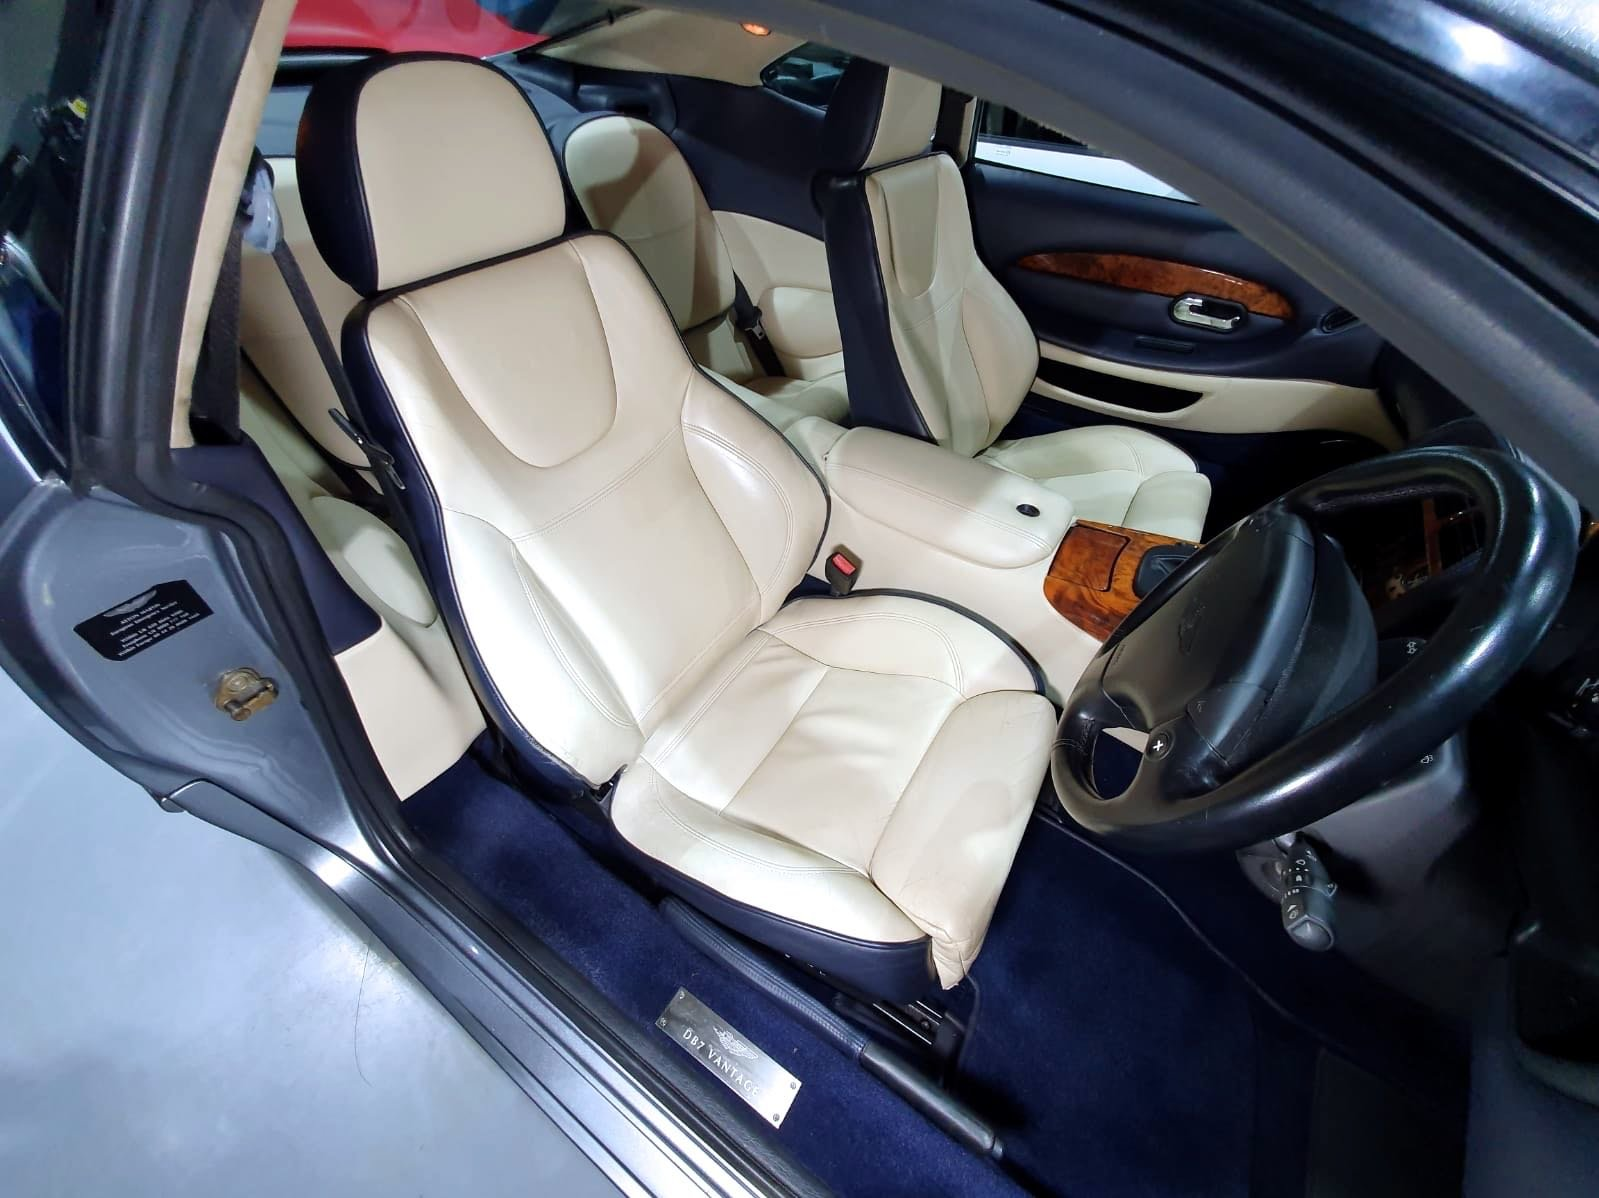 2001 Aston Martin DB7 Vantage Coupe - Immaculate For Sale (picture 6 of 6)